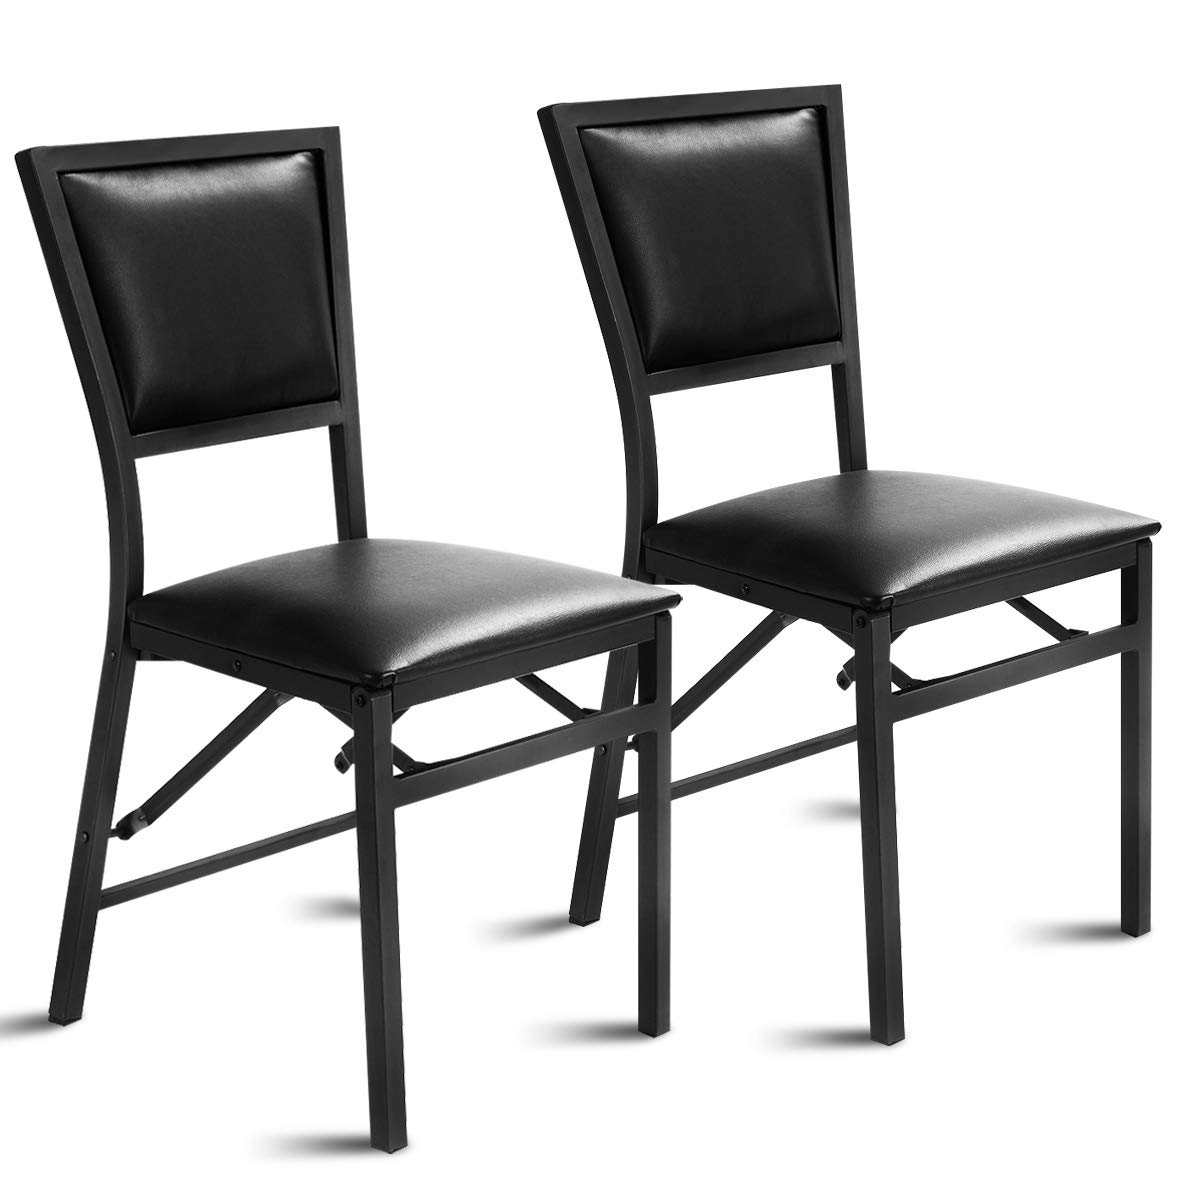 Giantex Set of 2 Metal Folding Chair Dining Chairs Home Restaurant Furniture Portable 18 X 20 X 33.5